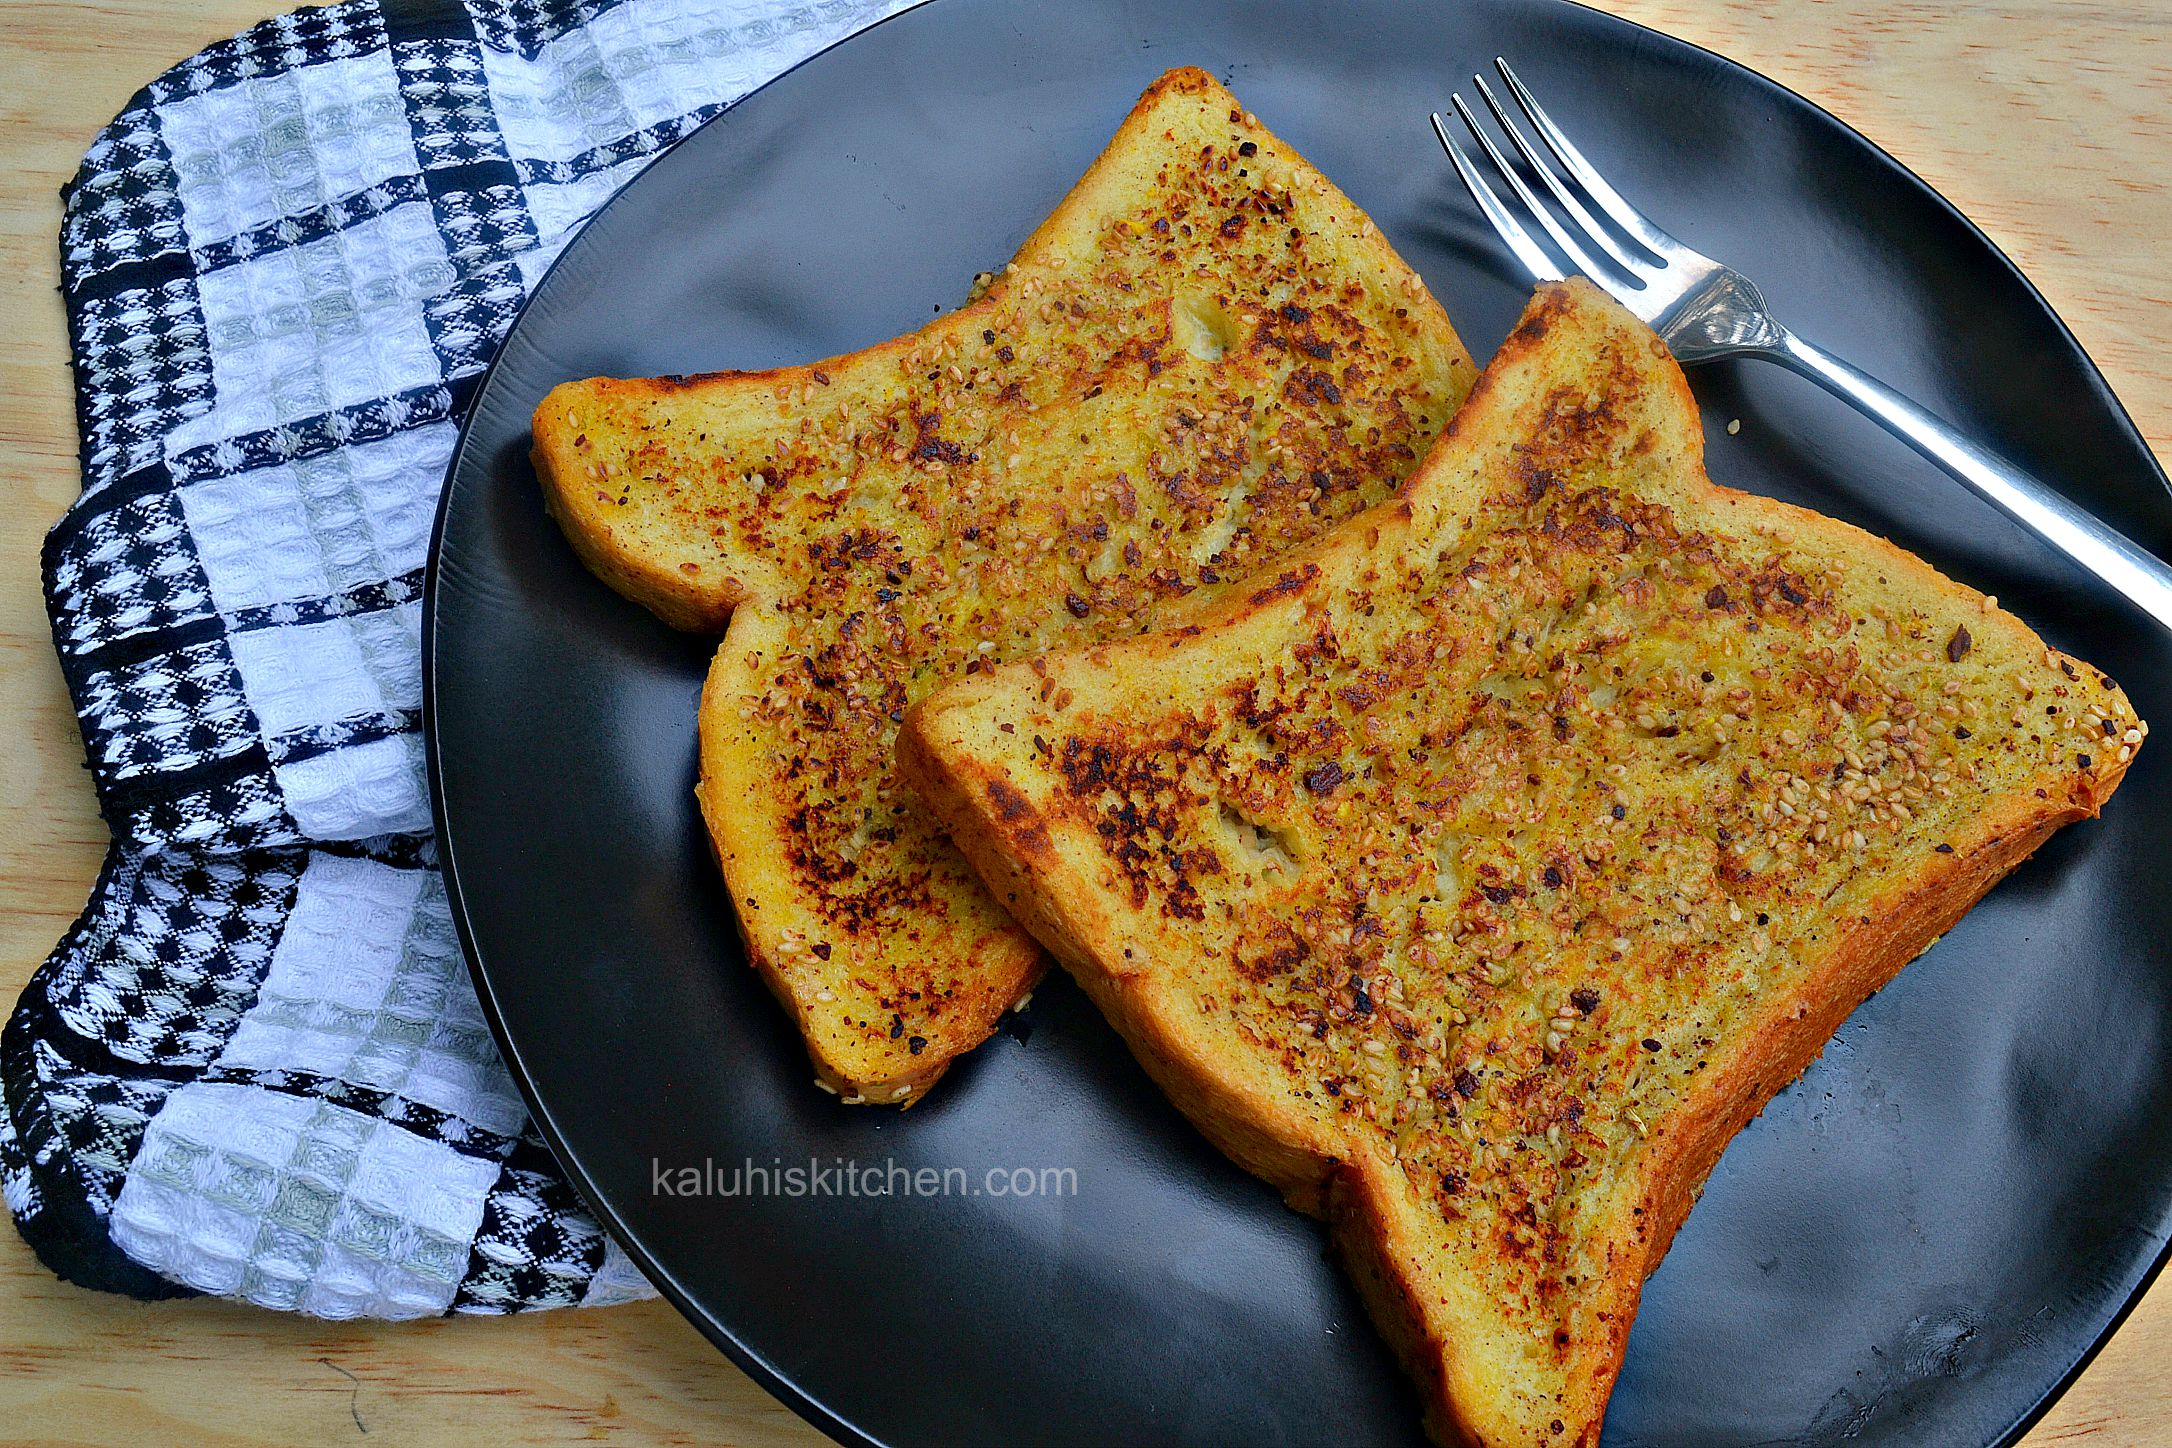 kenyan food blog kaluhiskitchen.com_tangerine and sesame seed french toast_how to make french toast